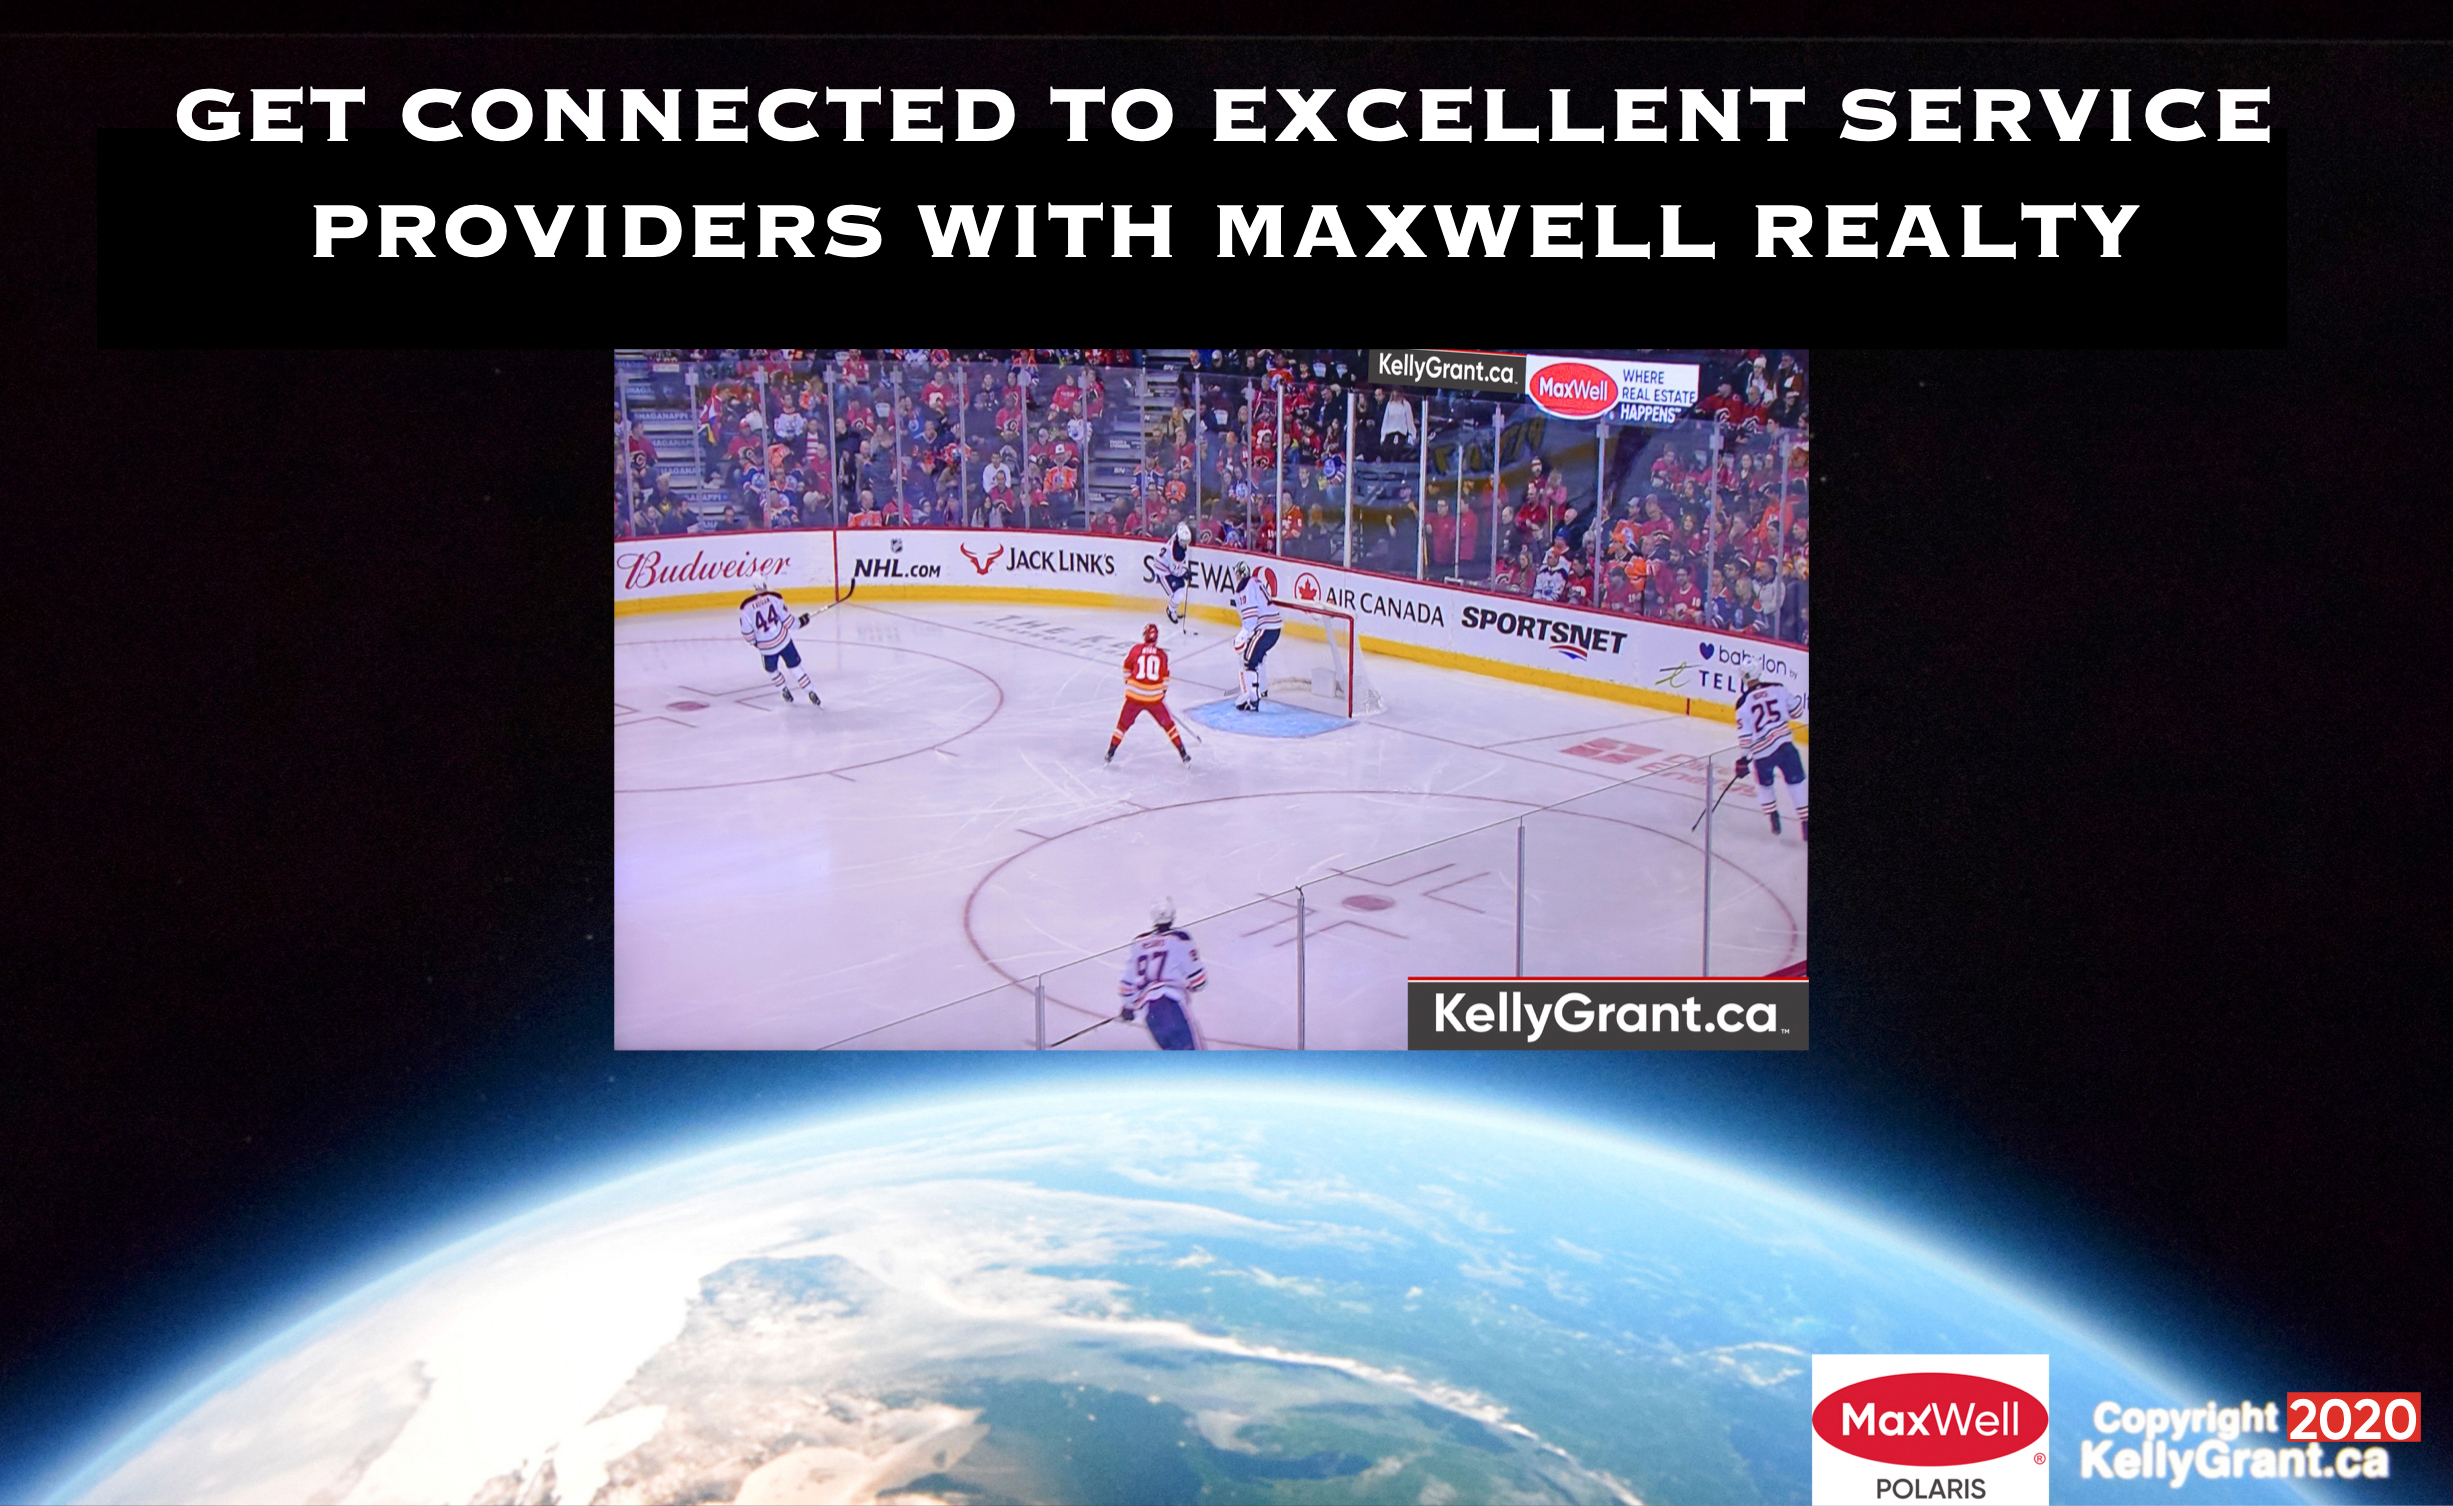 Get Connected to Excellent Service Providers